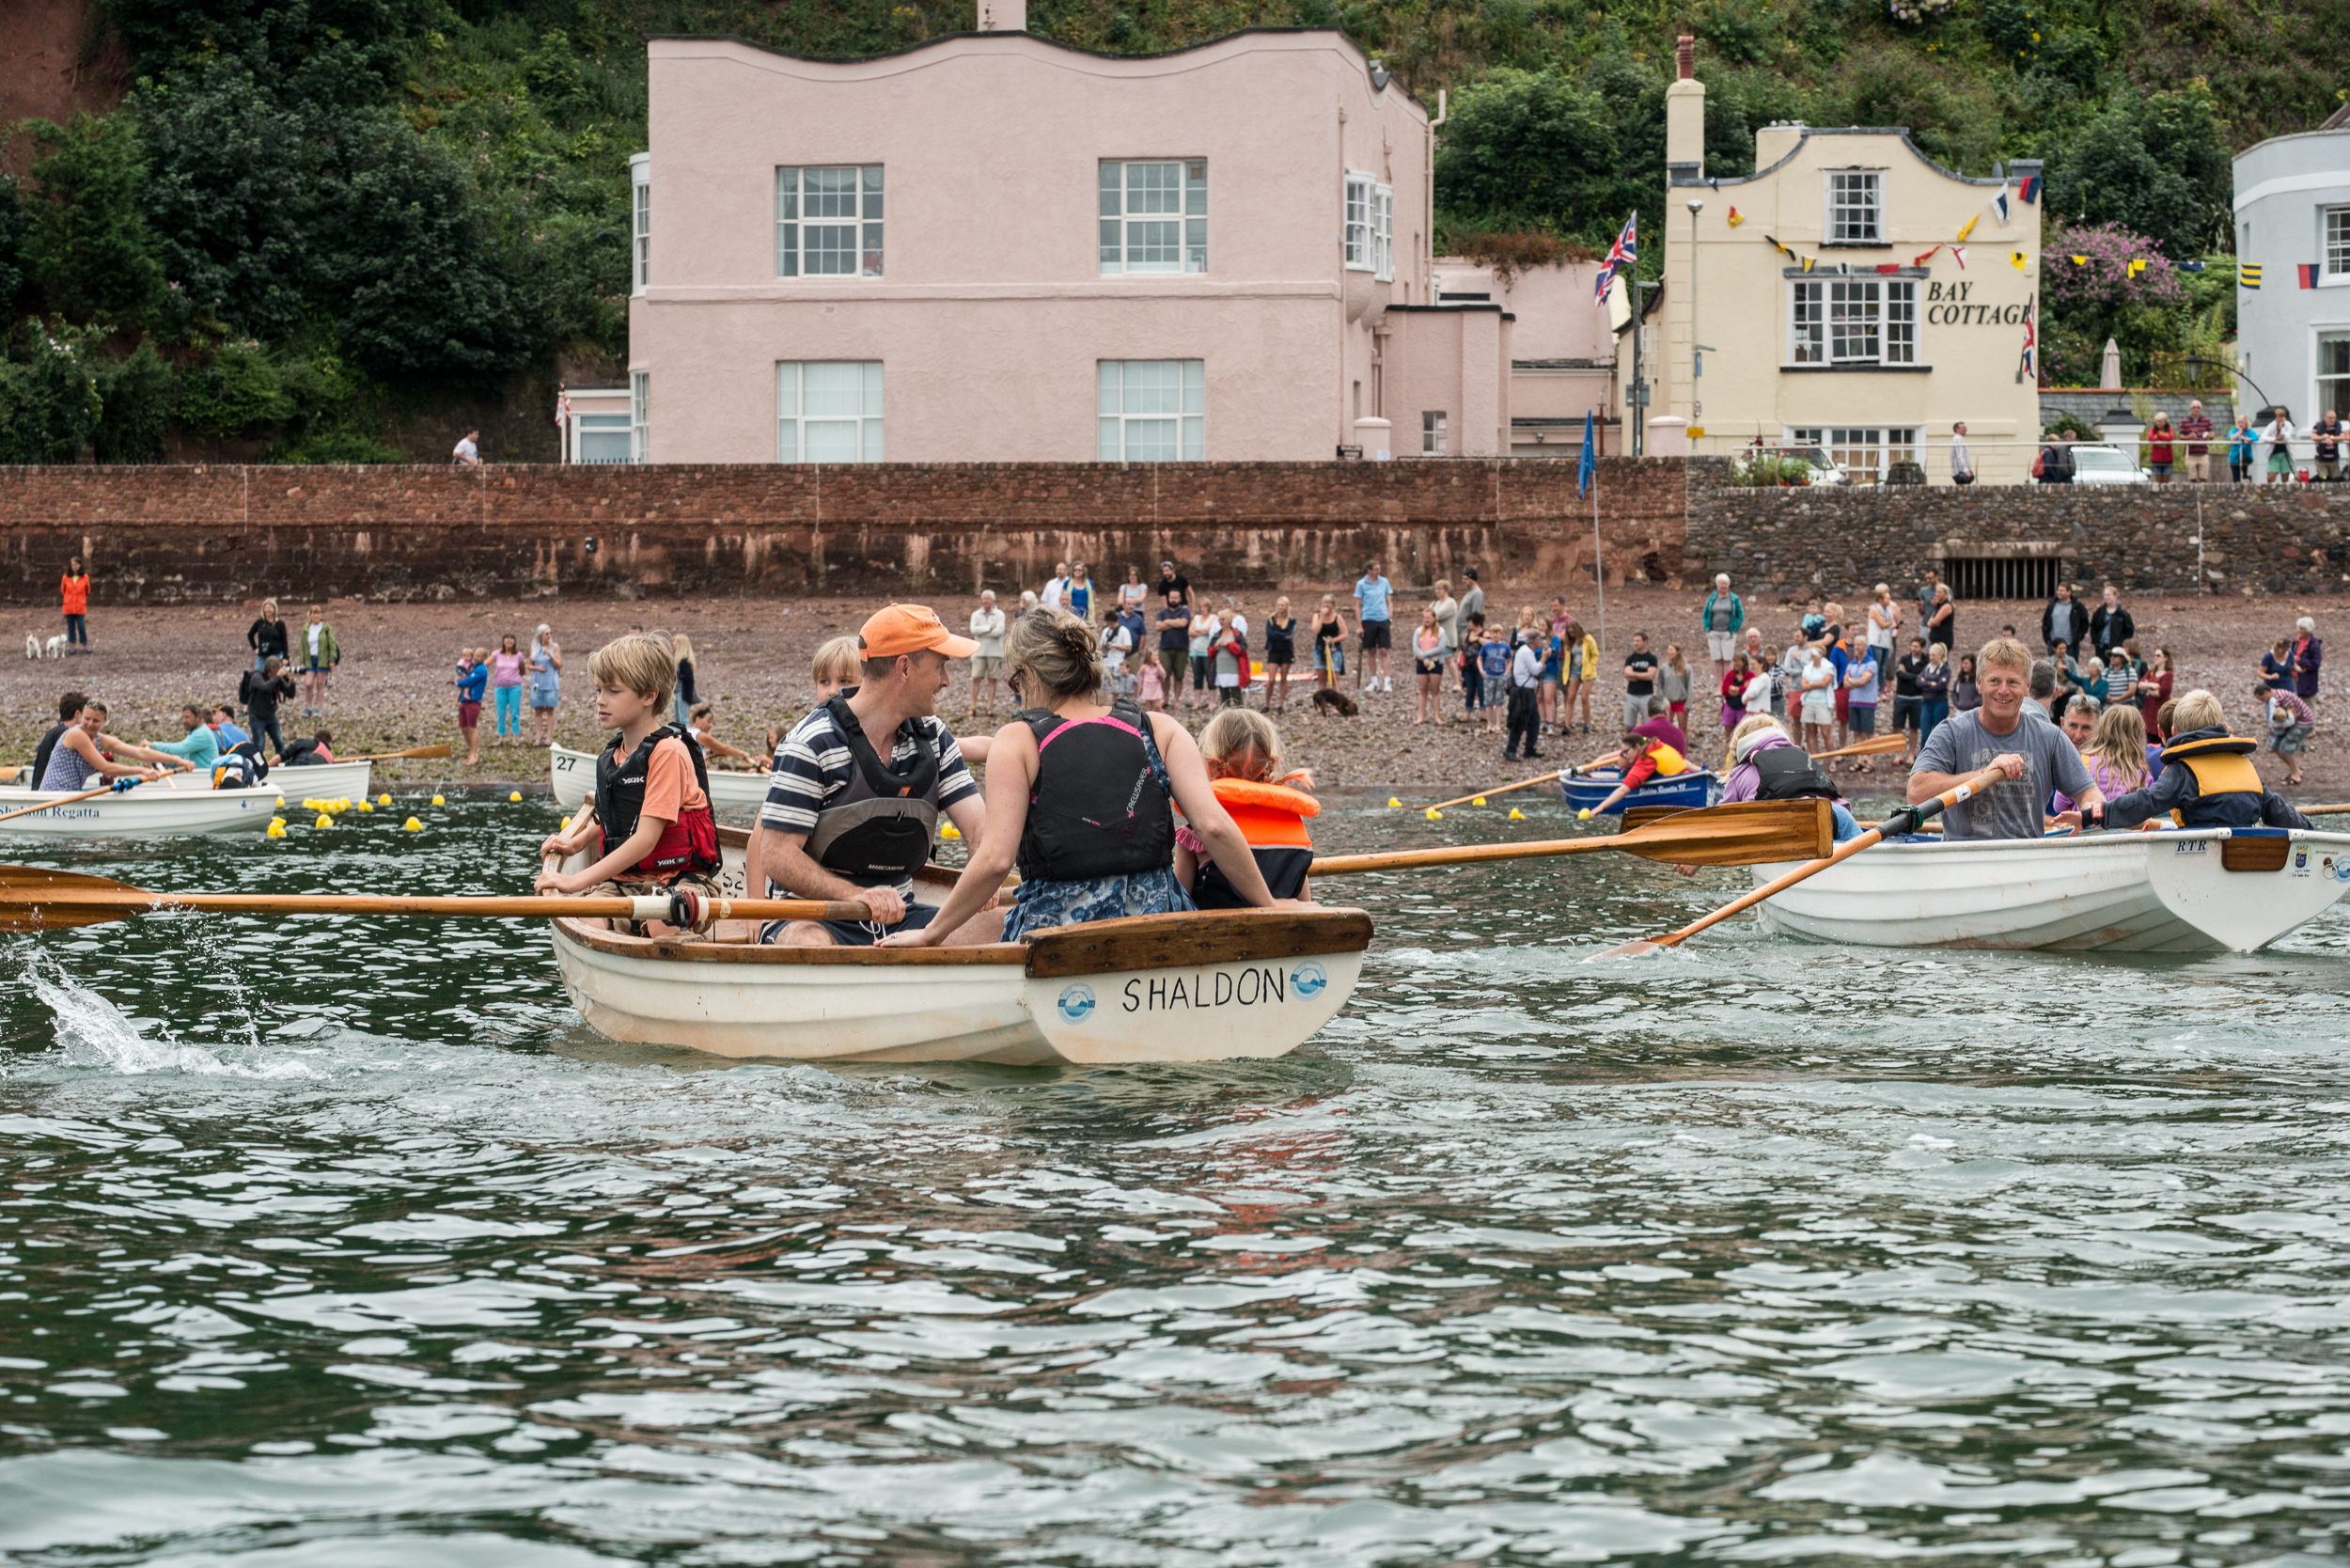 The great duck race - Yellow plastic ducks are trained up all winter ready for this race. The race starts at Pole Sands and finishes in the harbour mouth. Once the winner has crossed the finish lines regatta boats of children head out to collect the ducks and receive 5p per duck collected.